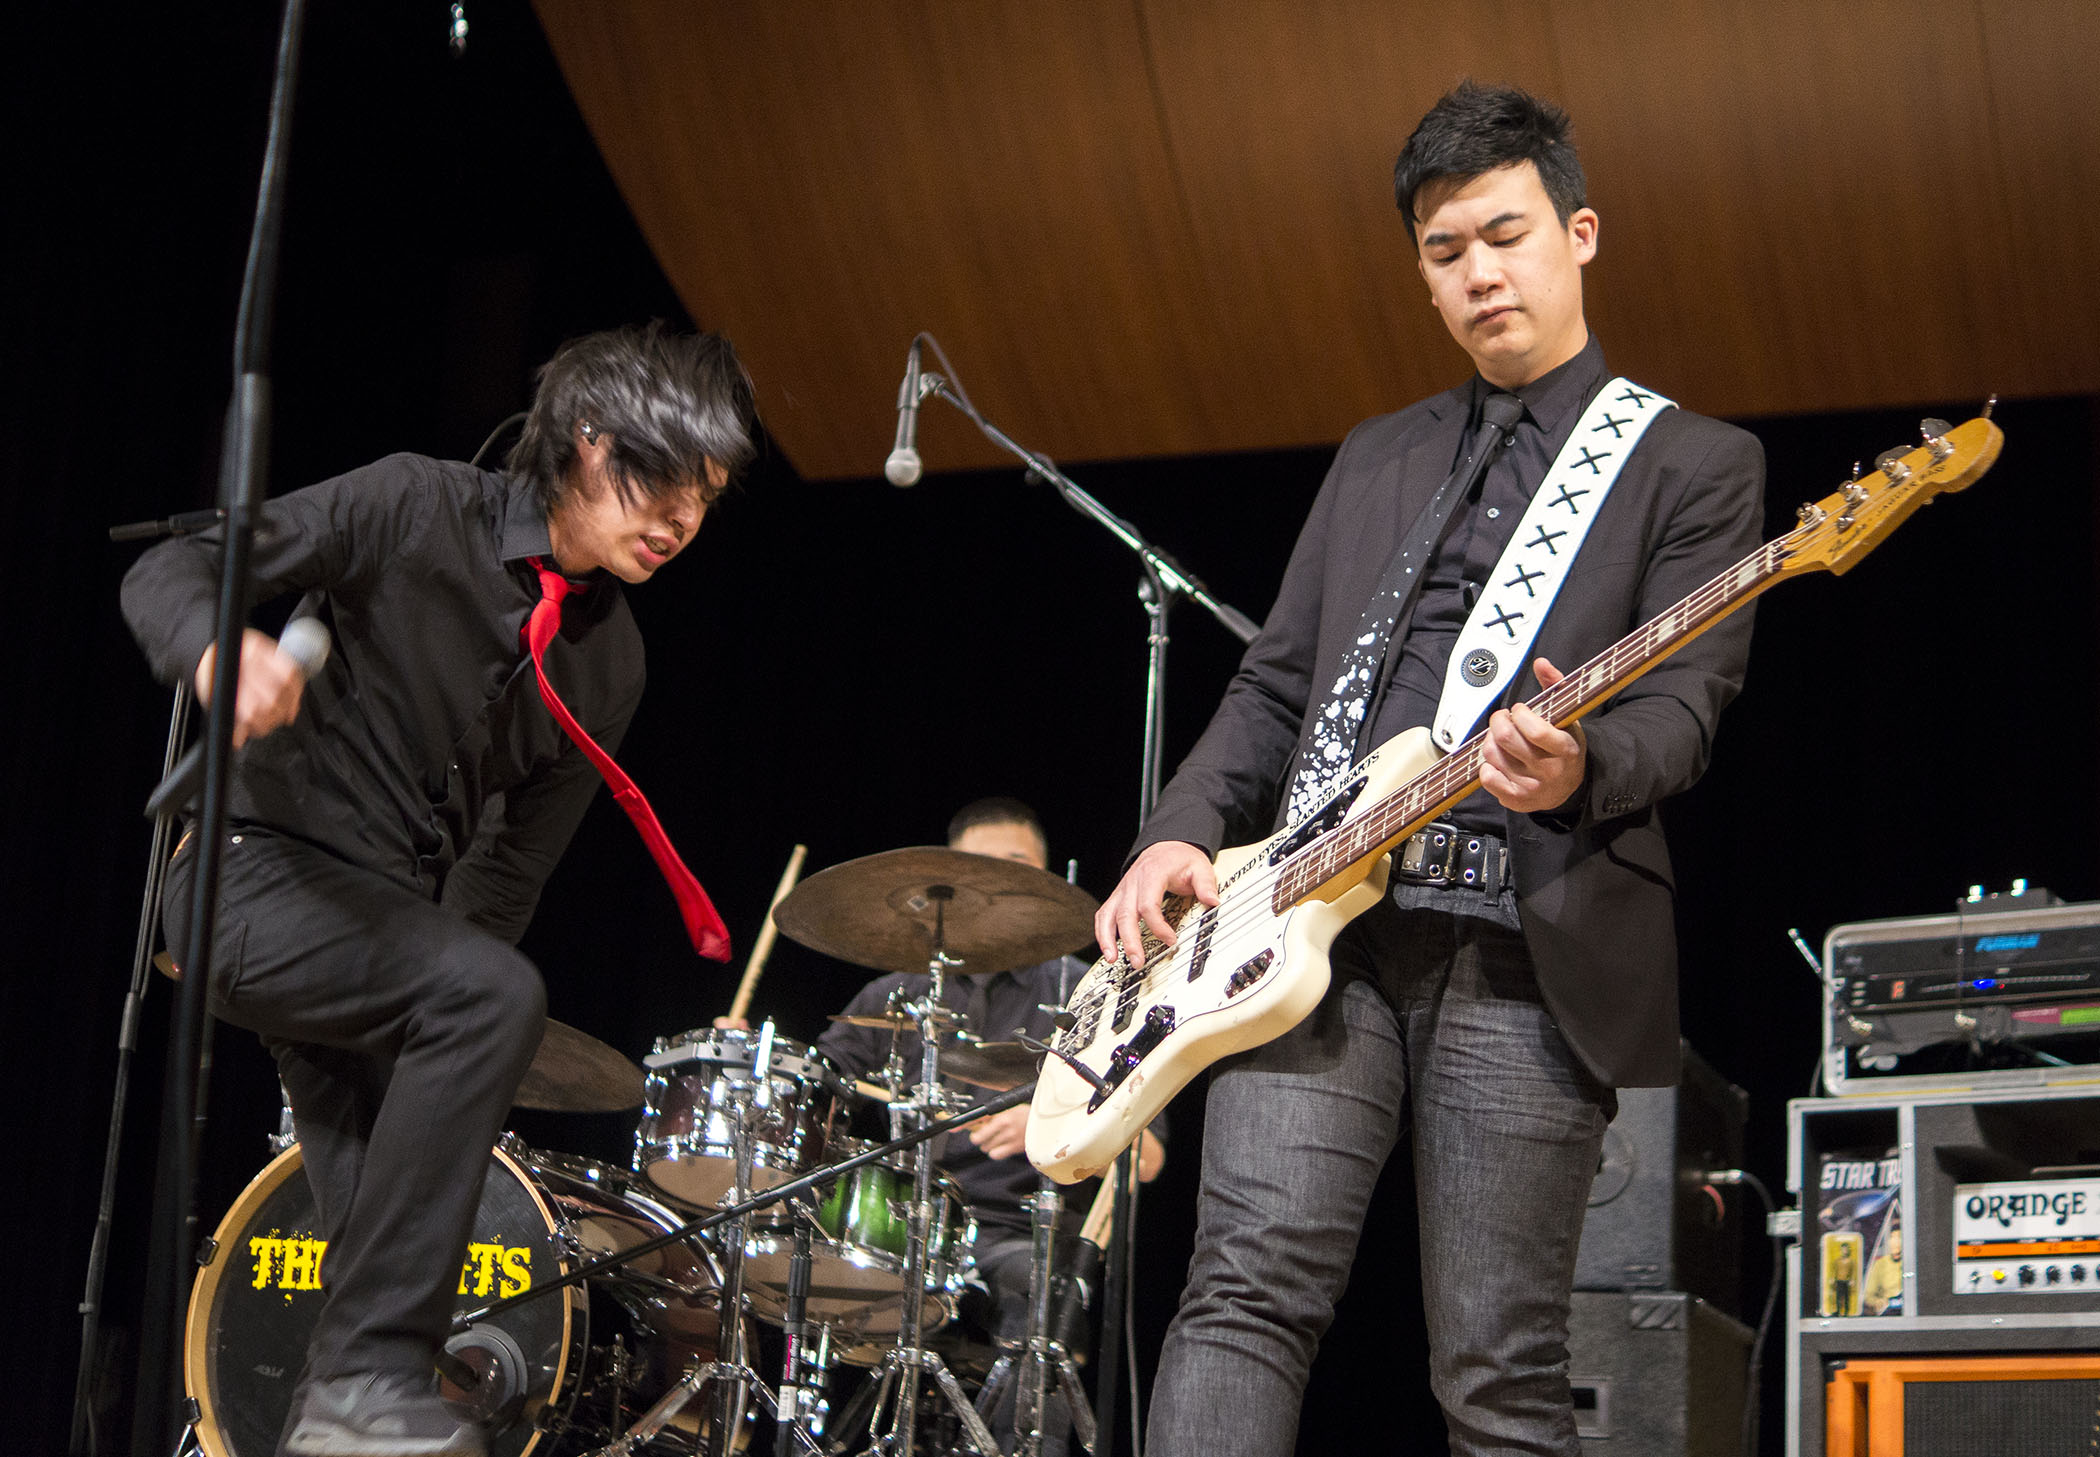 The Slants perform in the OAB on April 4, 2017.